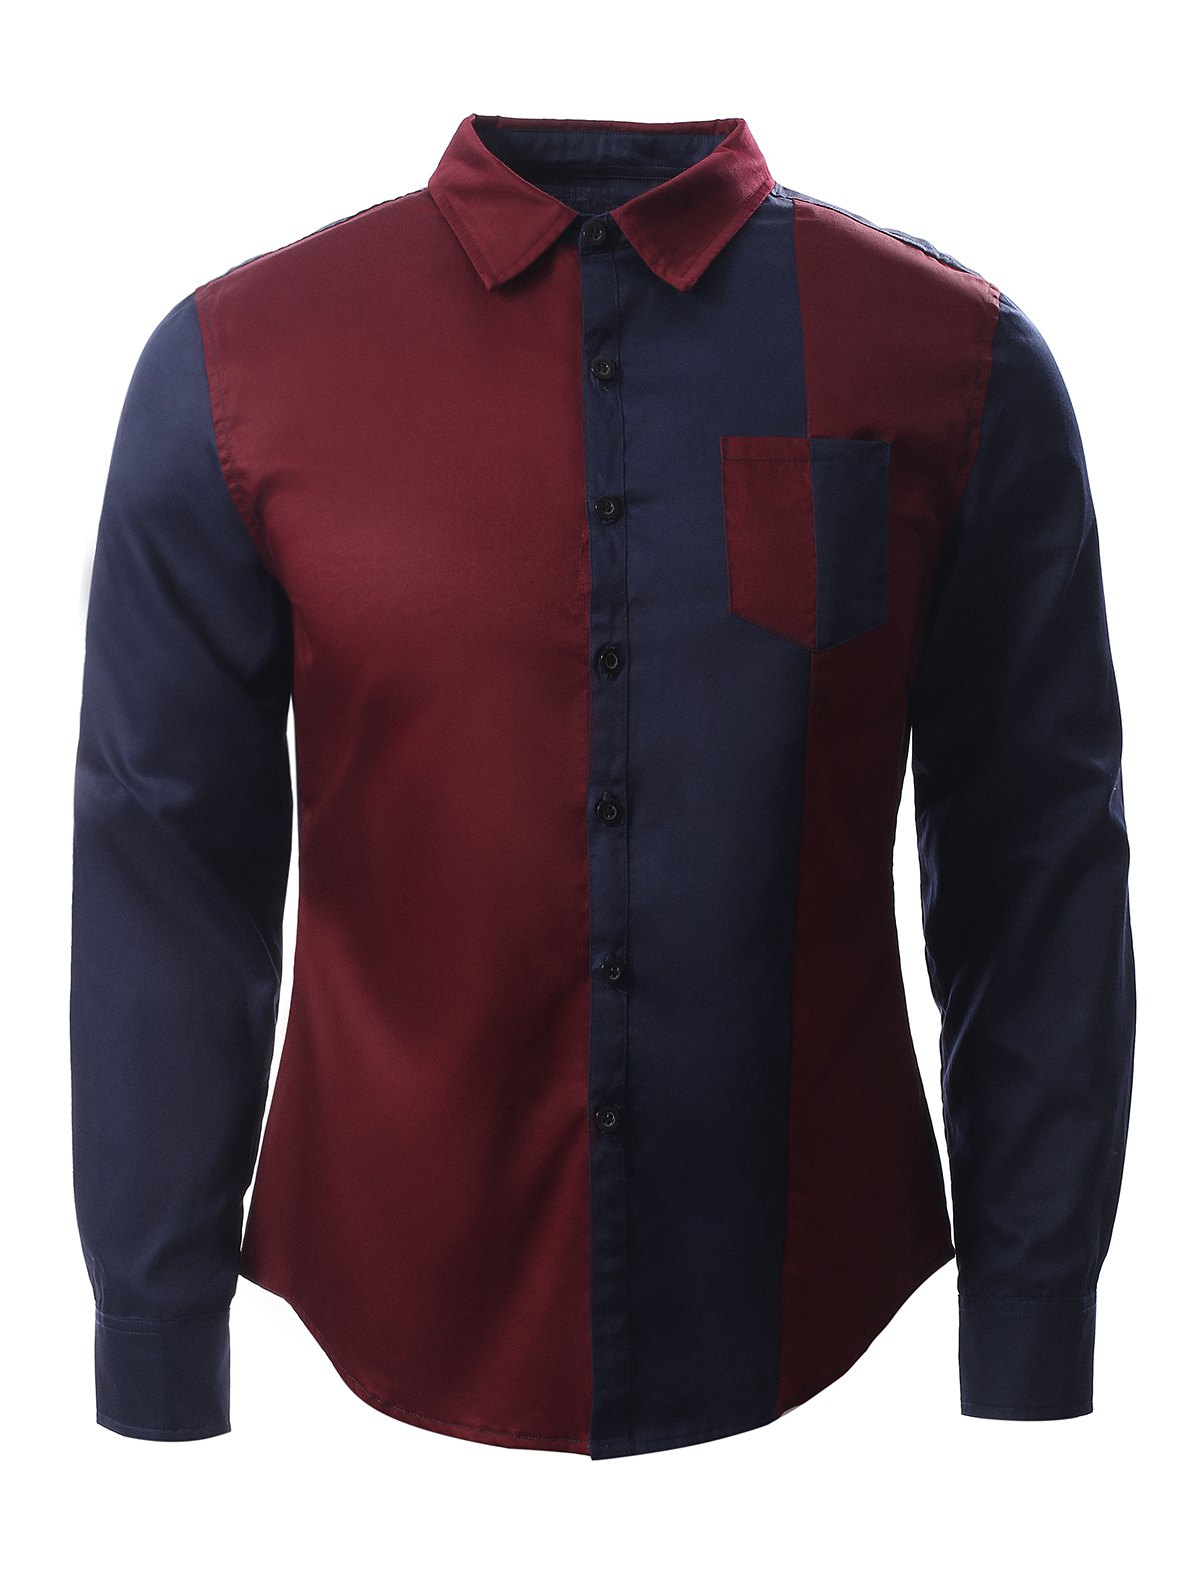 Col rabattu Long Couleur manches Bloc Splicing Conception shirt - Bleu et Rouge S